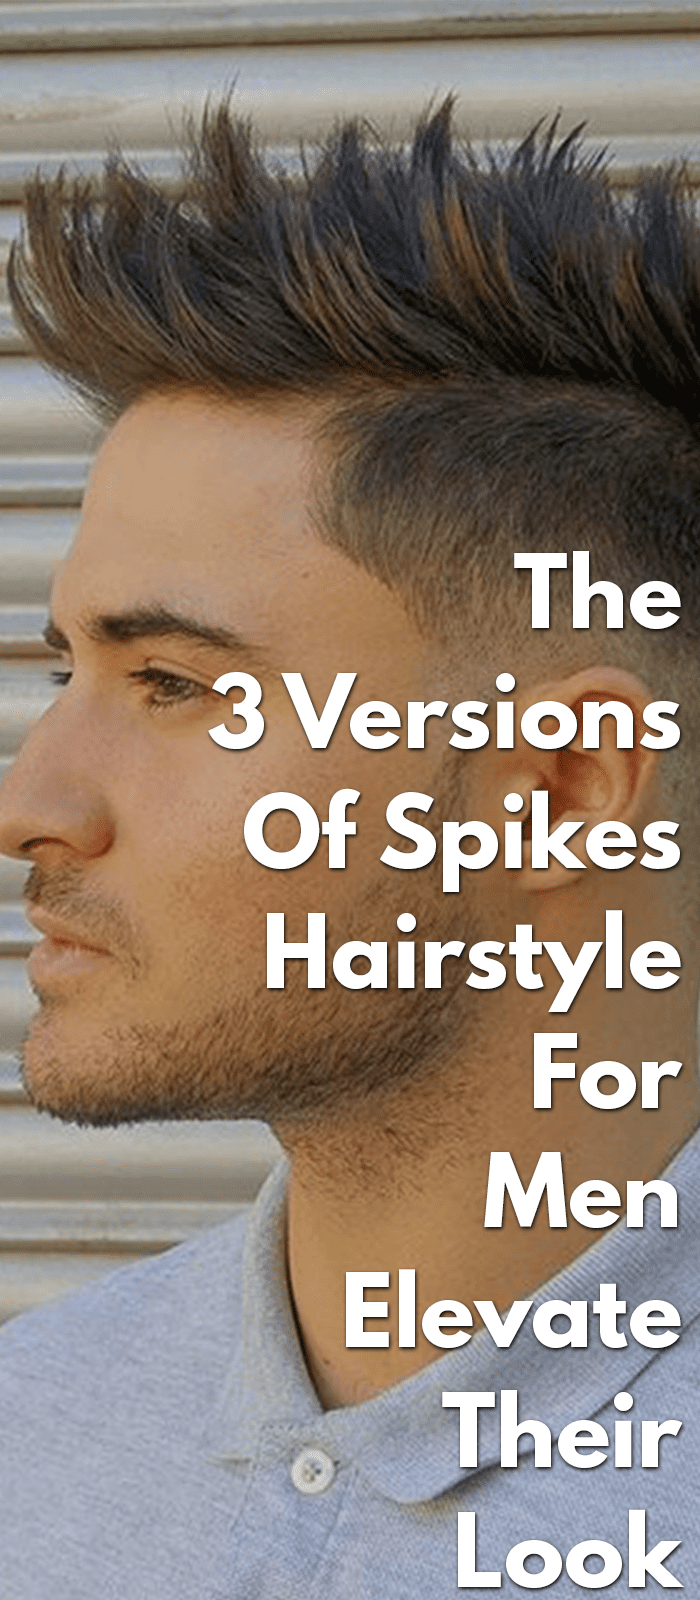 The-3-Versions-Of-Spikes-Hairstyle-For-Men-Elevate-Their-Look.